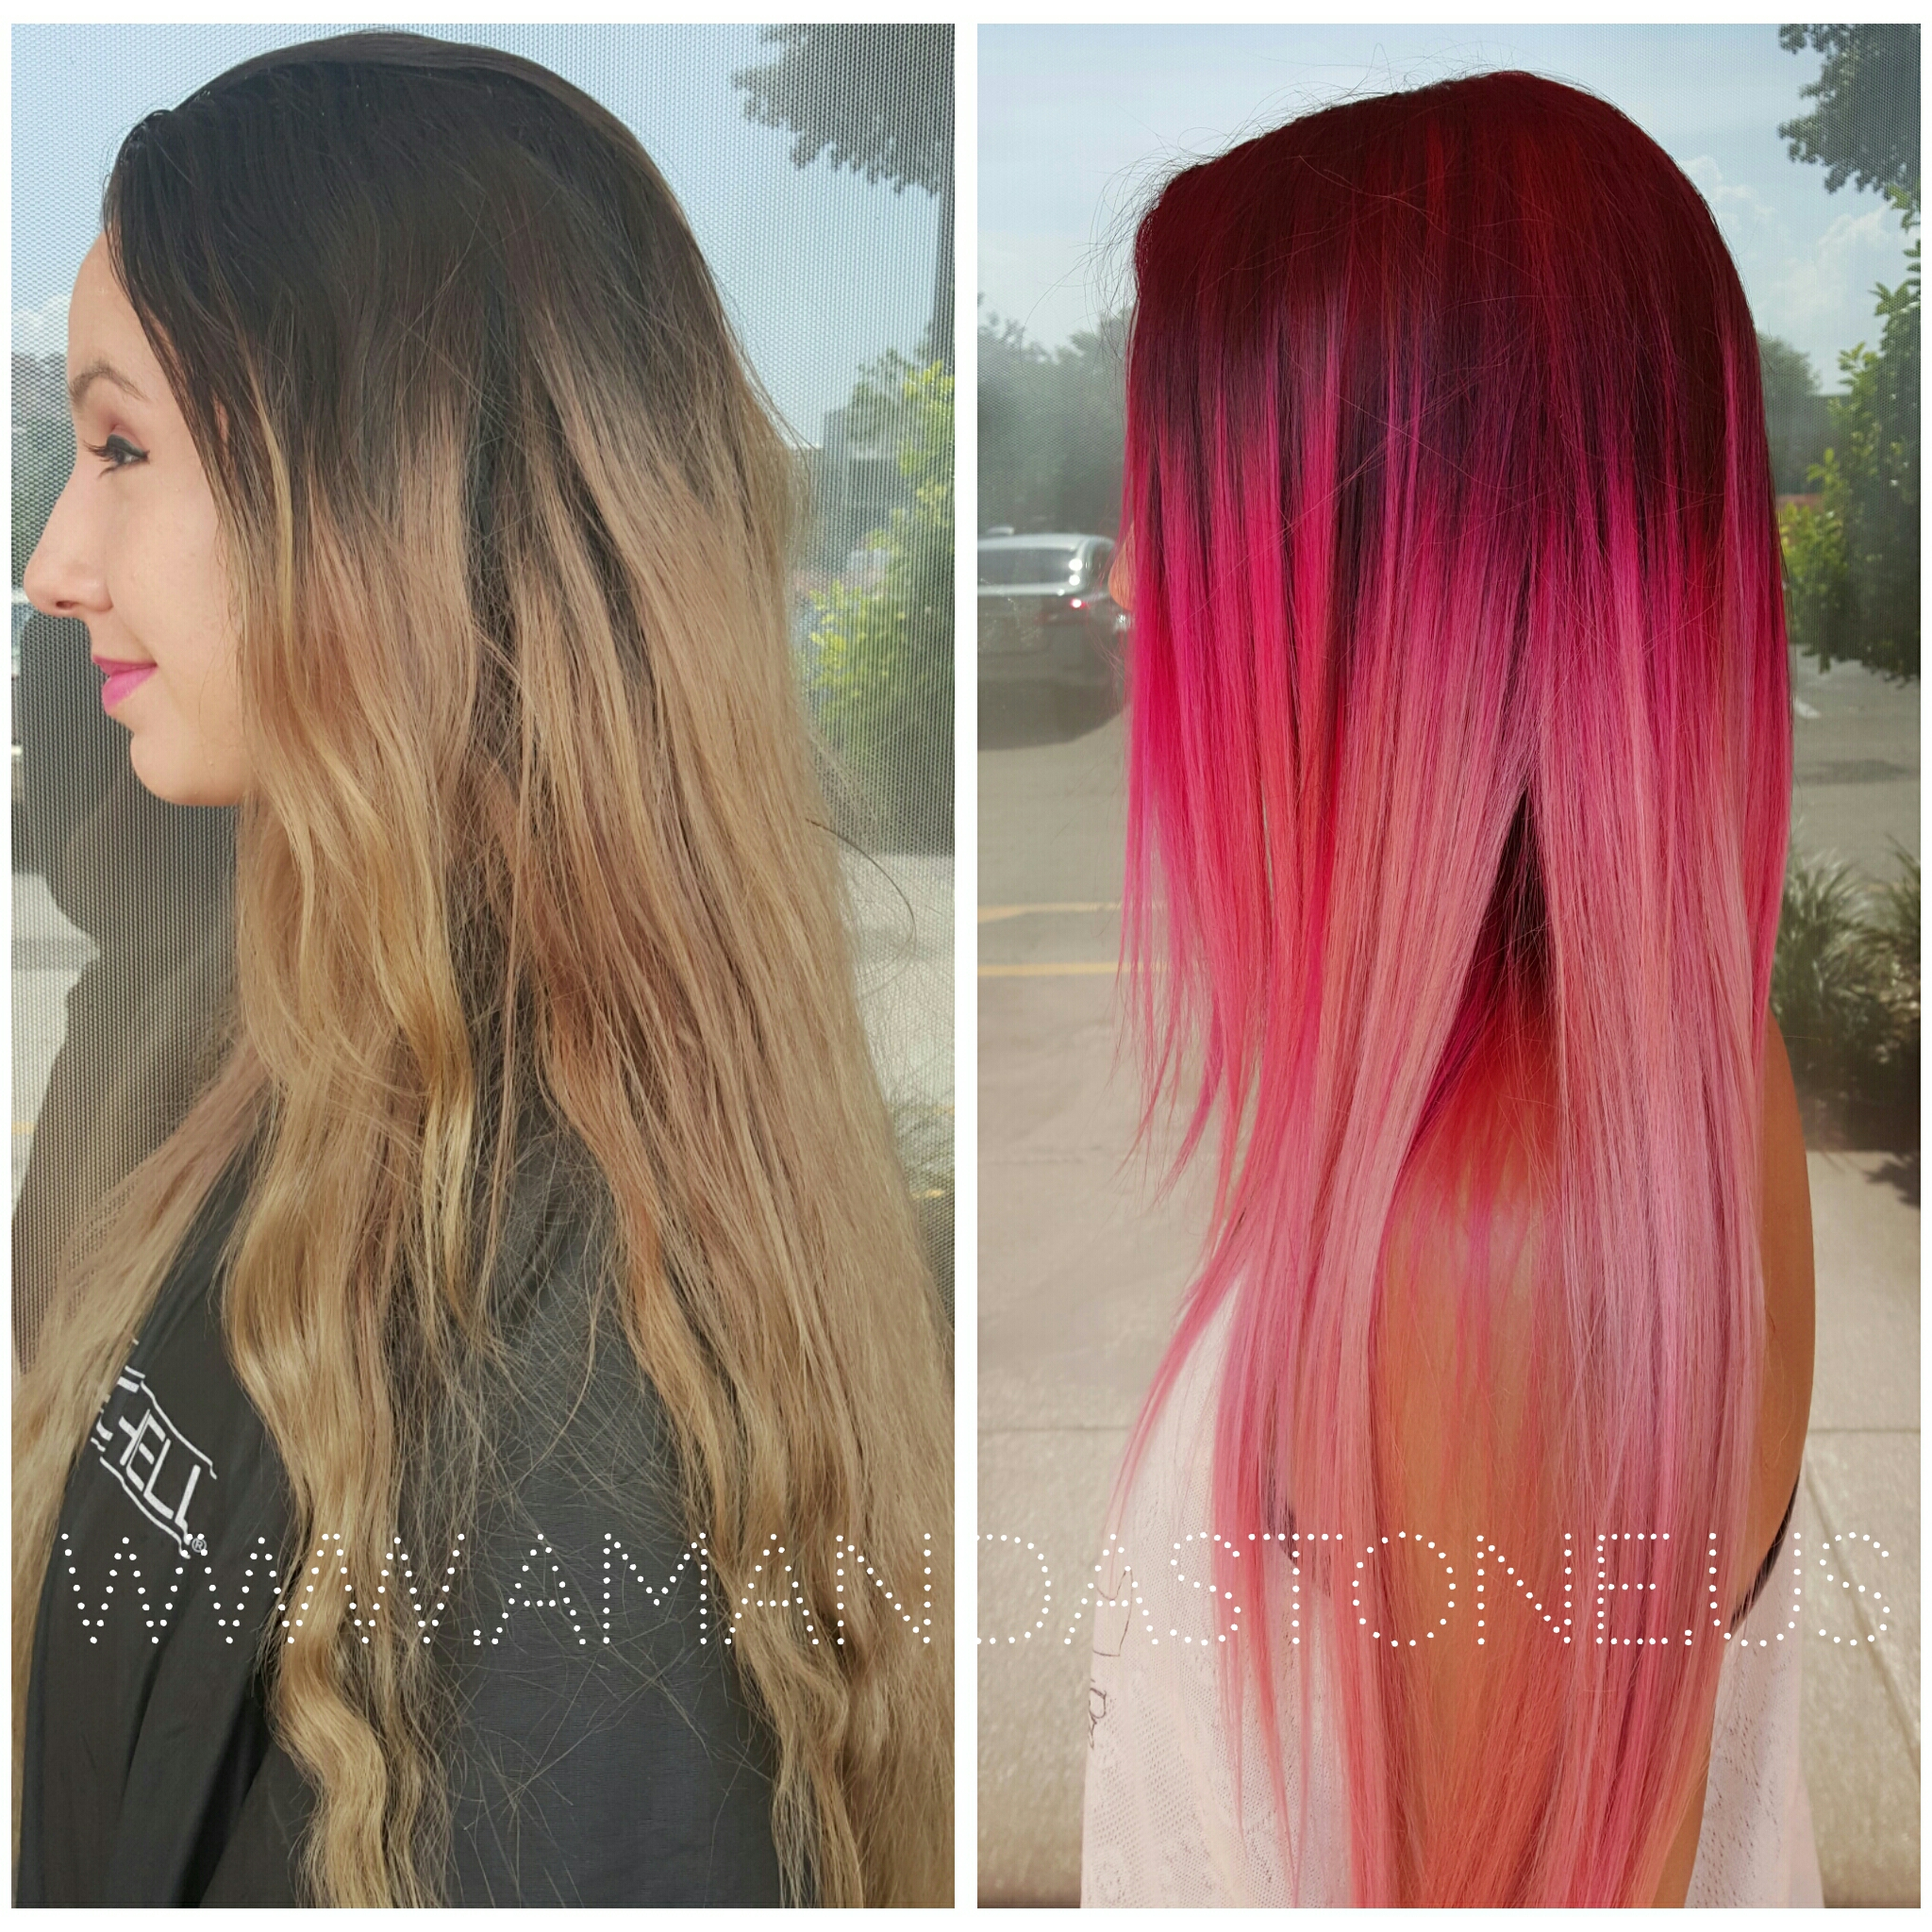 Bleeding Ombre